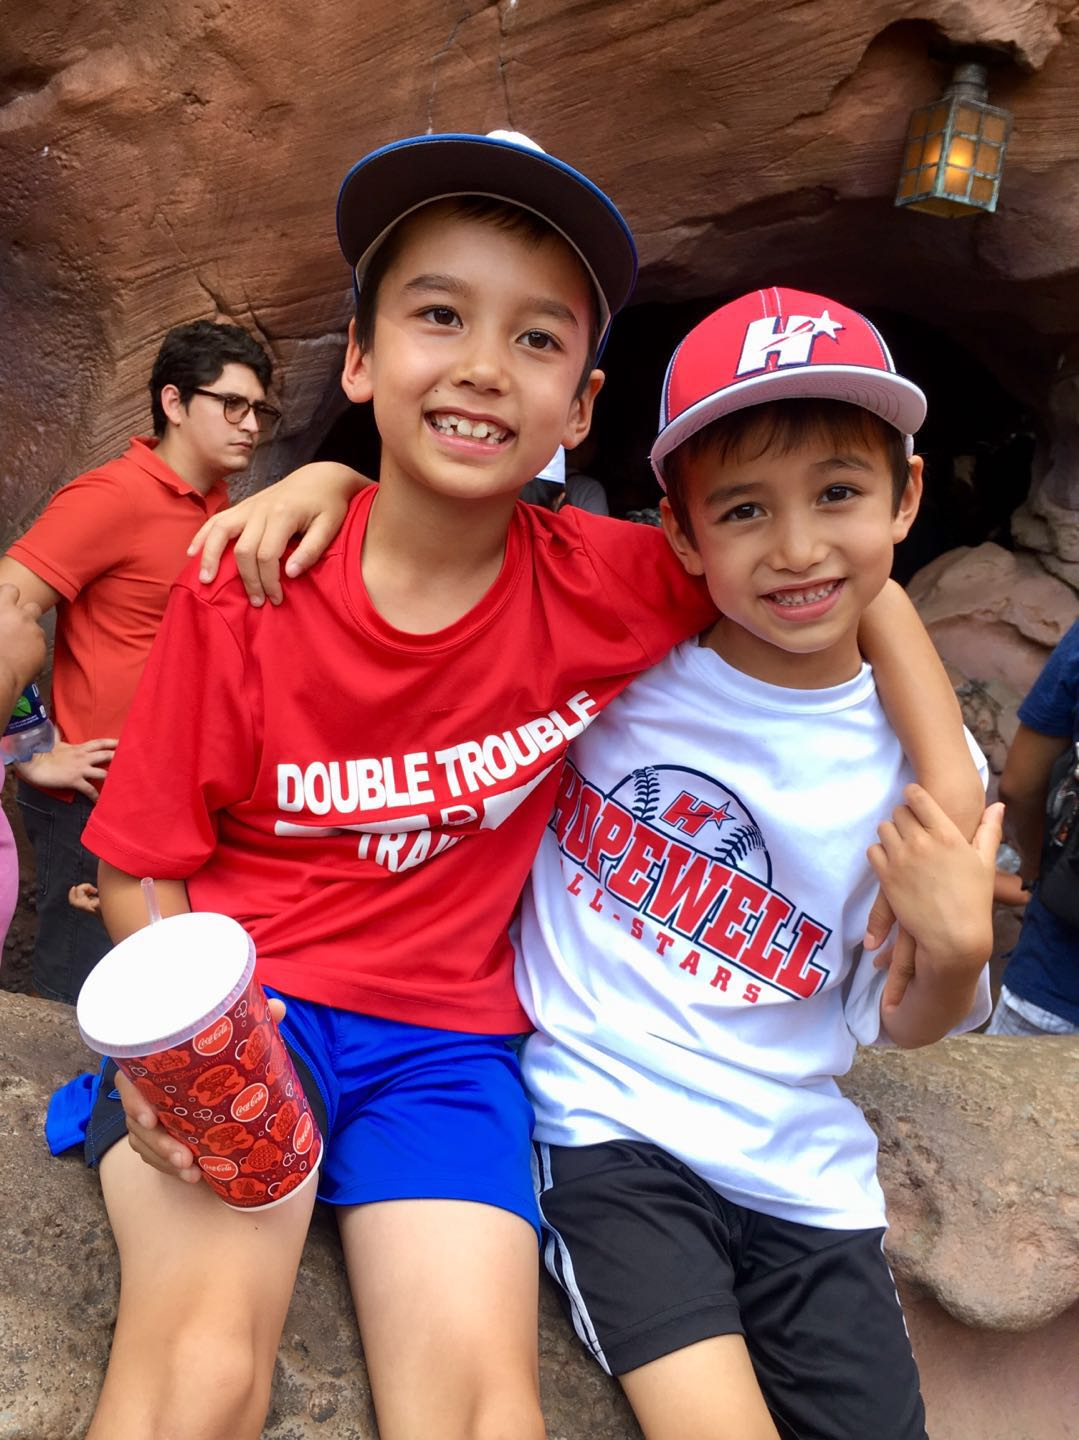 Brothers: Sawyer, 8 years old, Zane, 6 years from Atlanta, GA review on Chinese Class